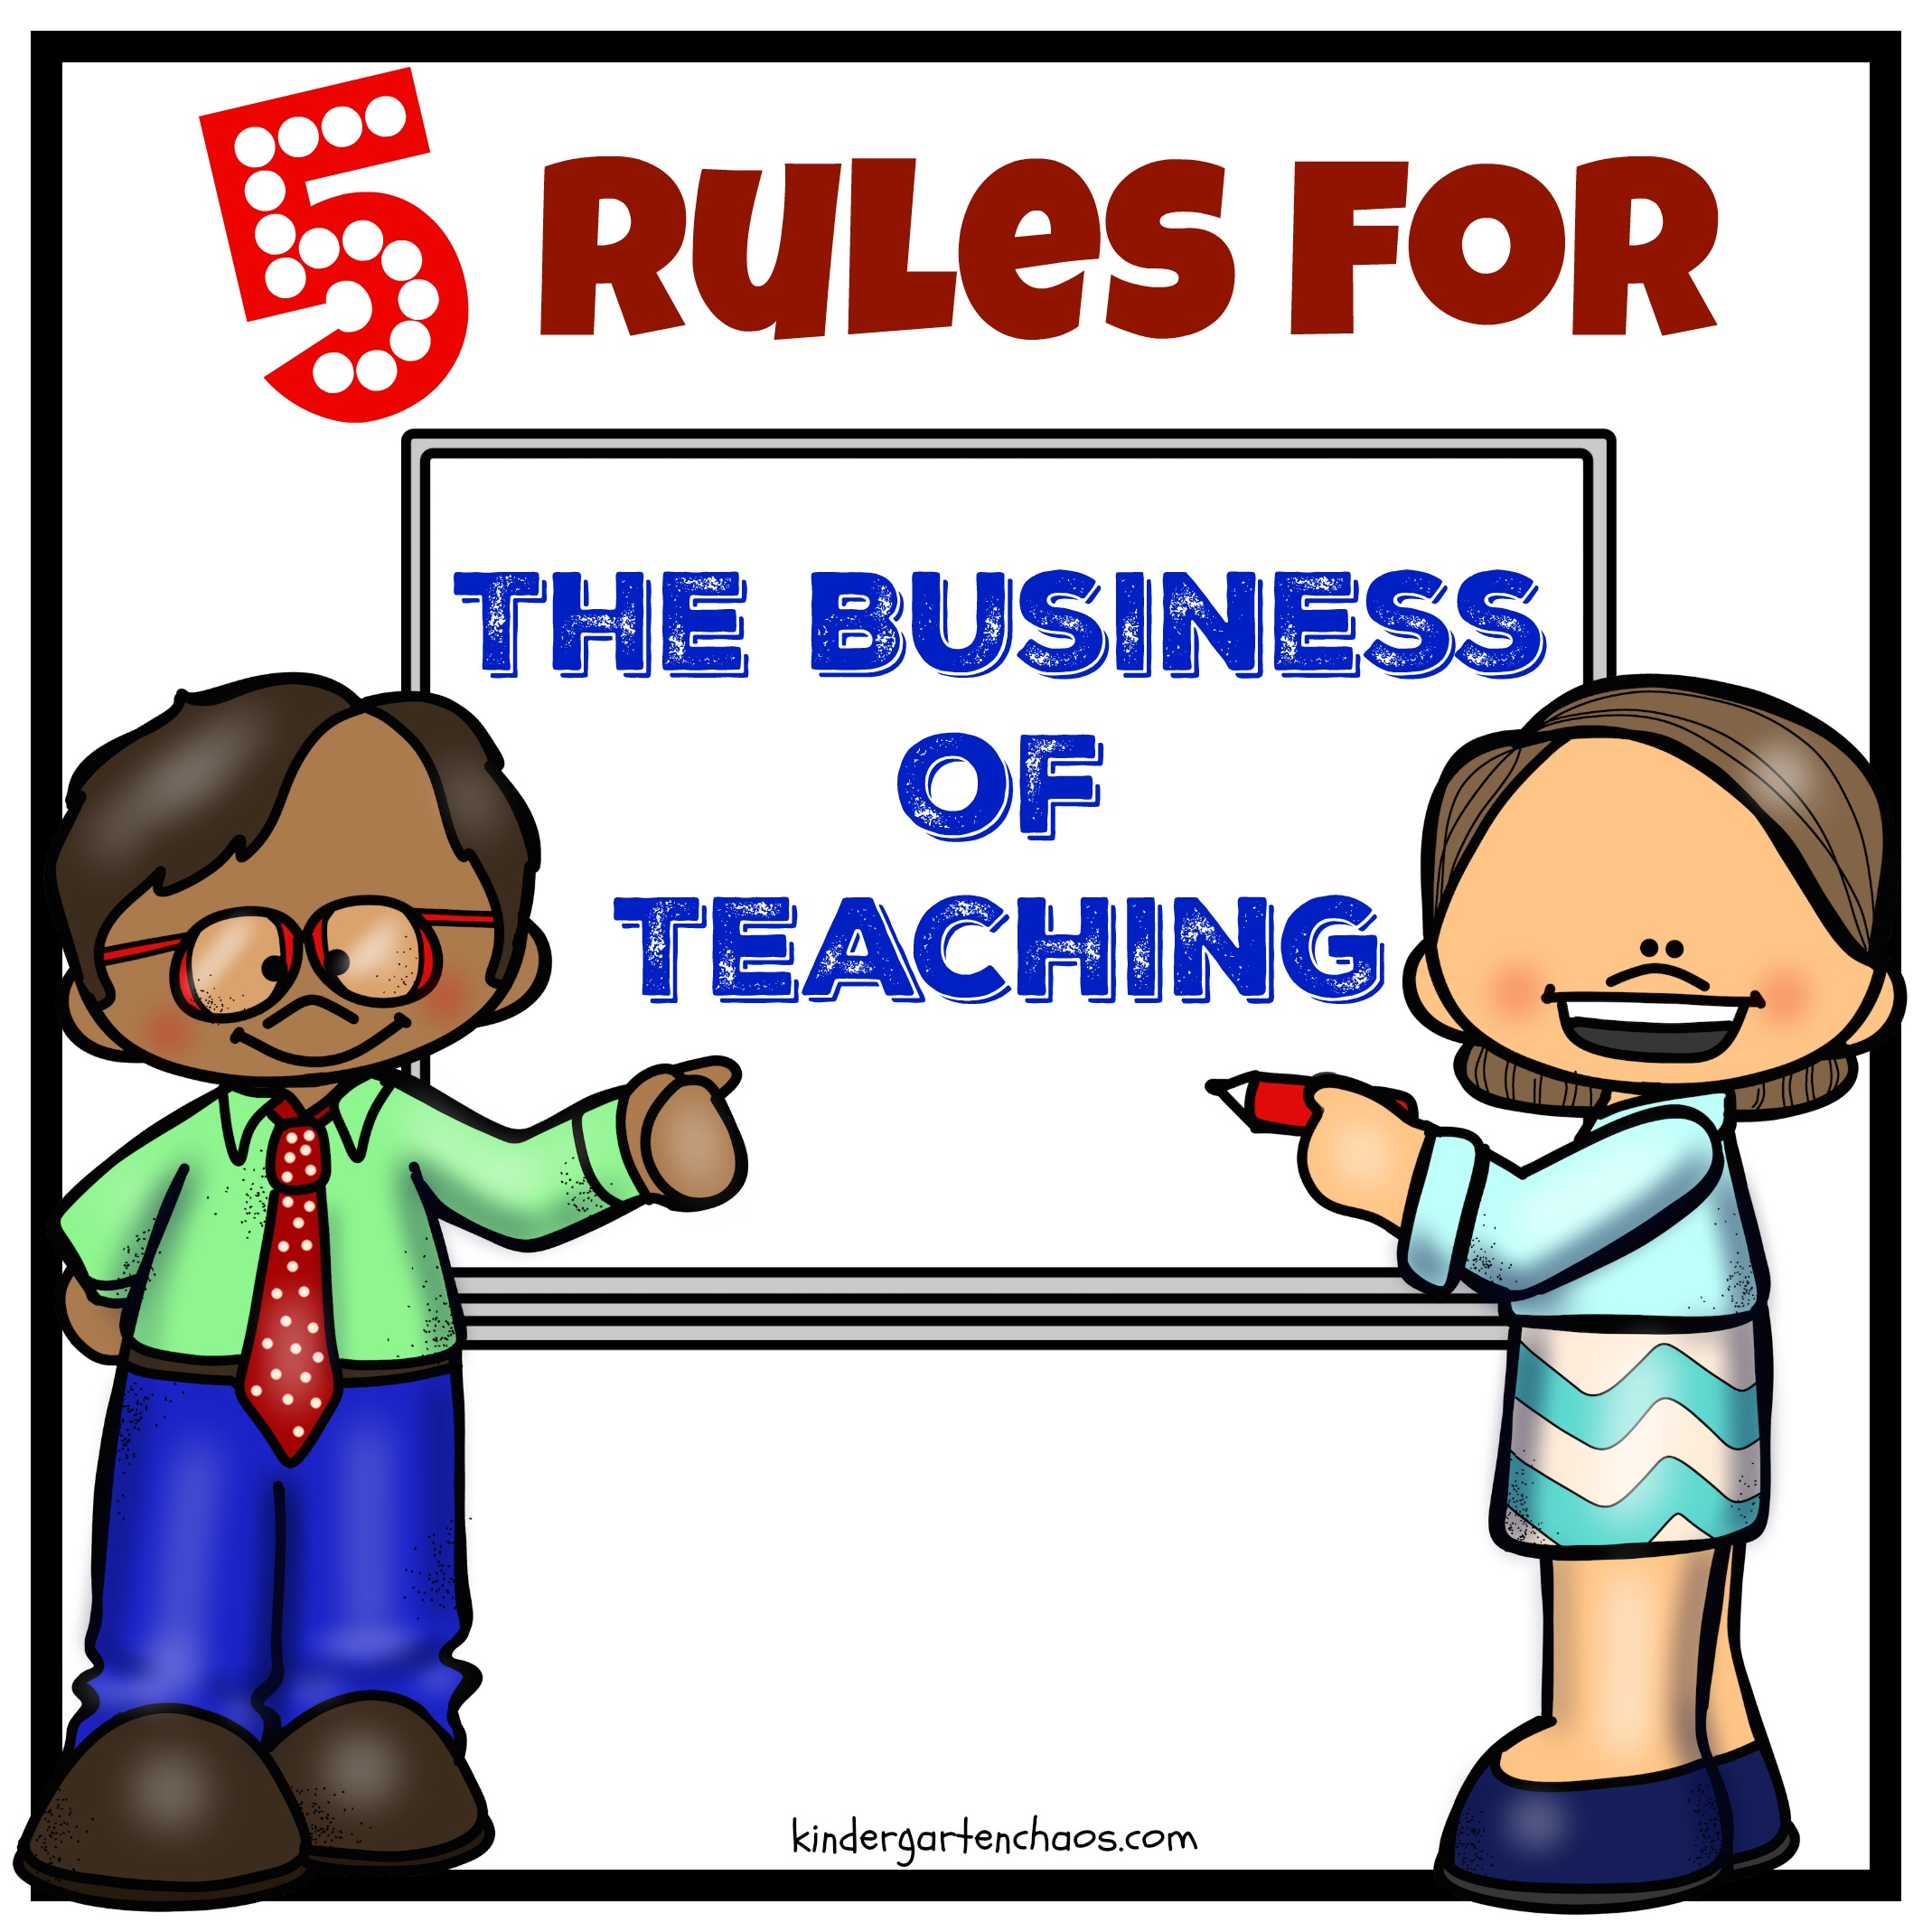 5 Rules for the Business of Teaching